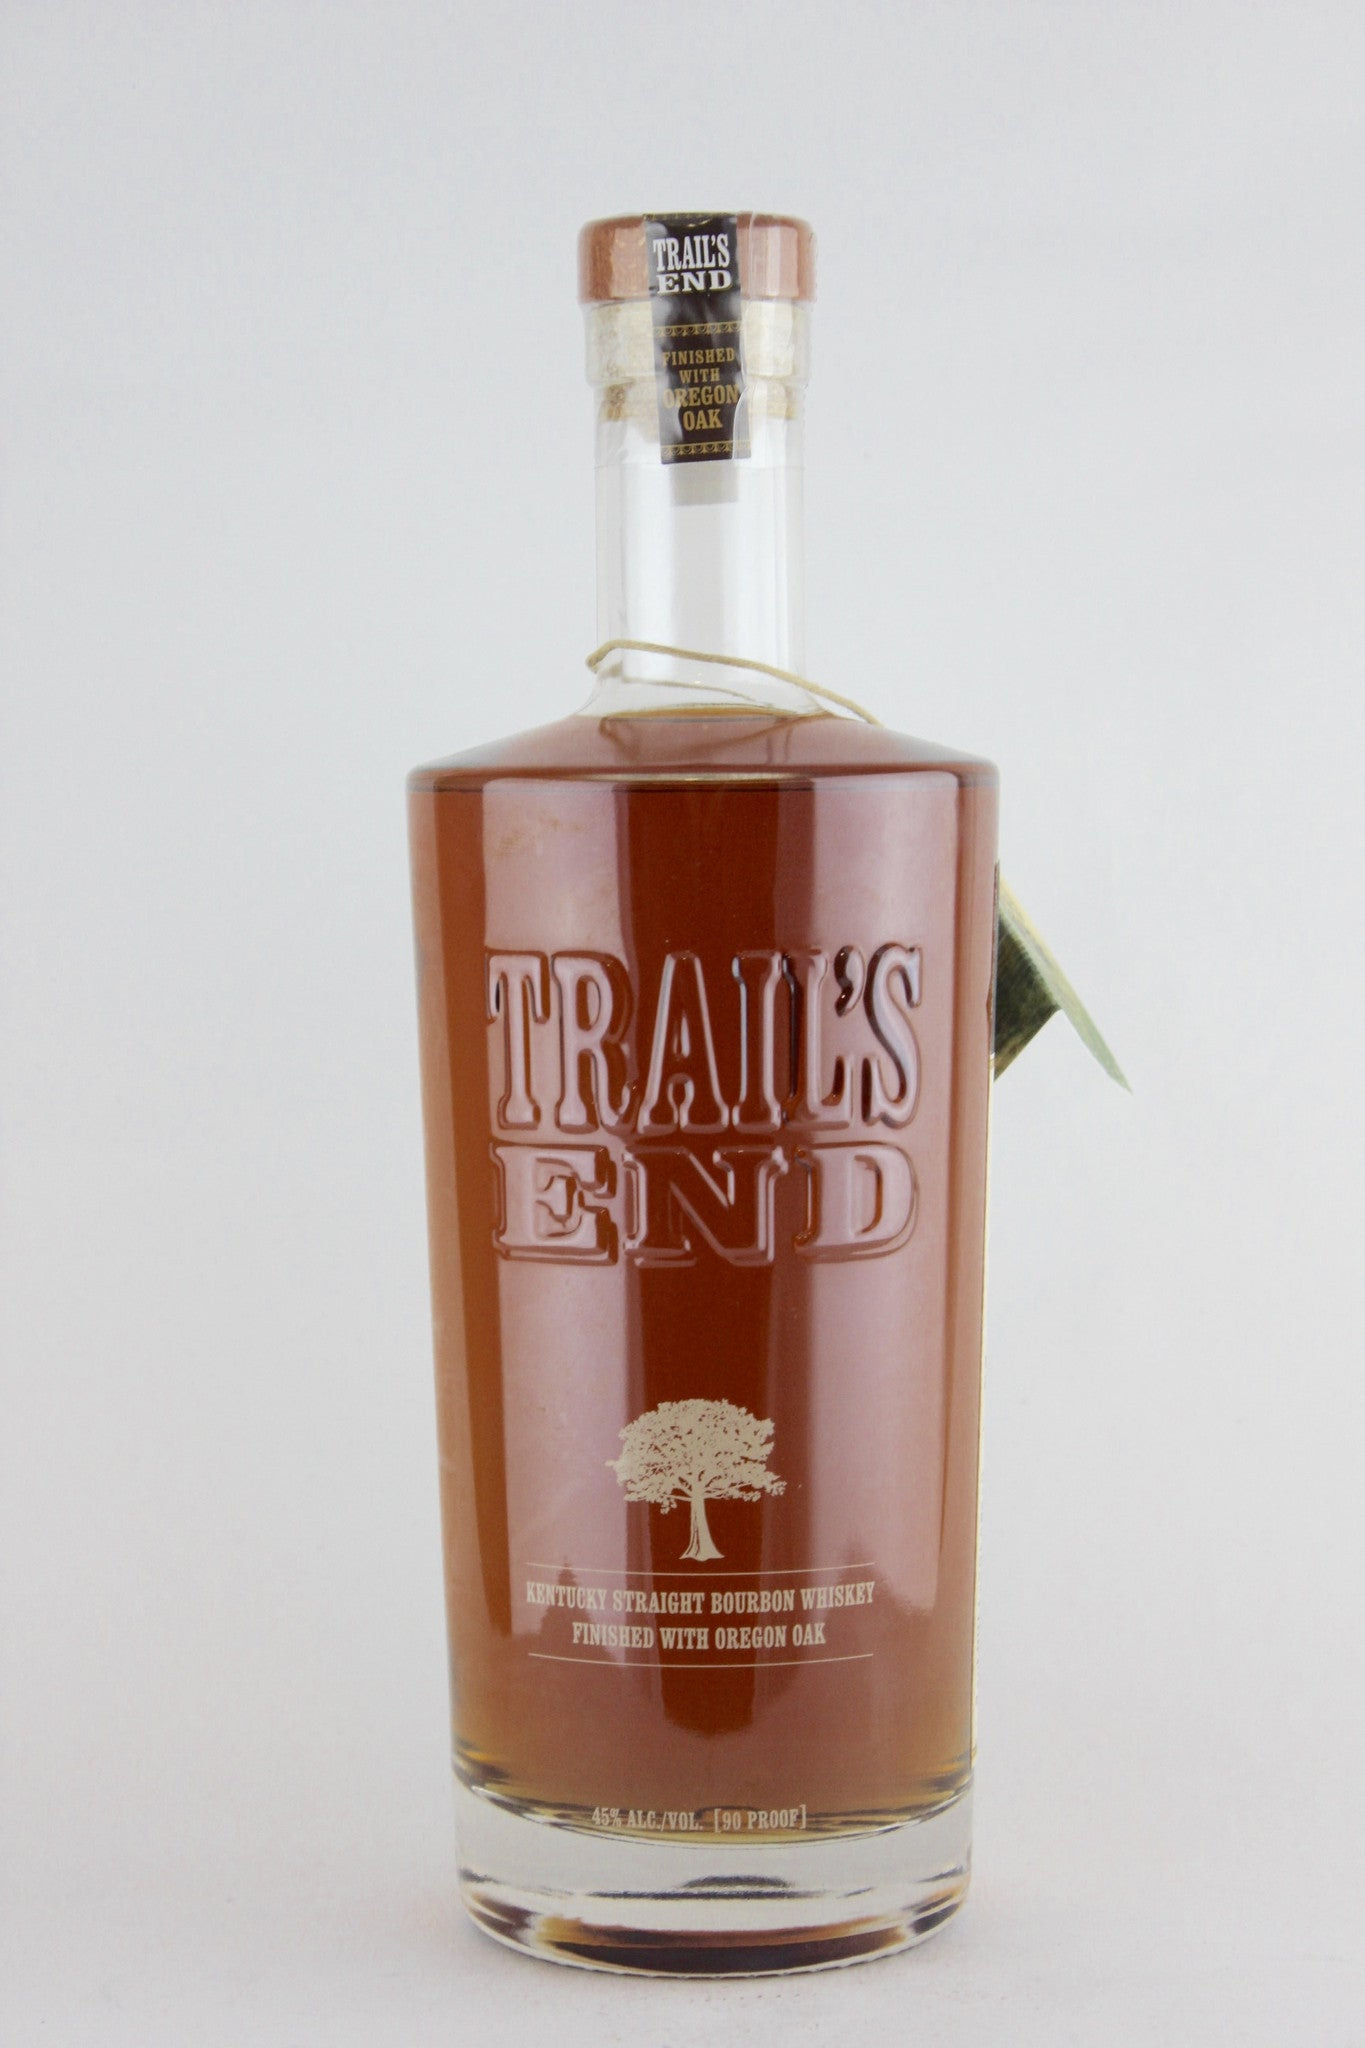 Trails End Kentucky Straight Whiskey